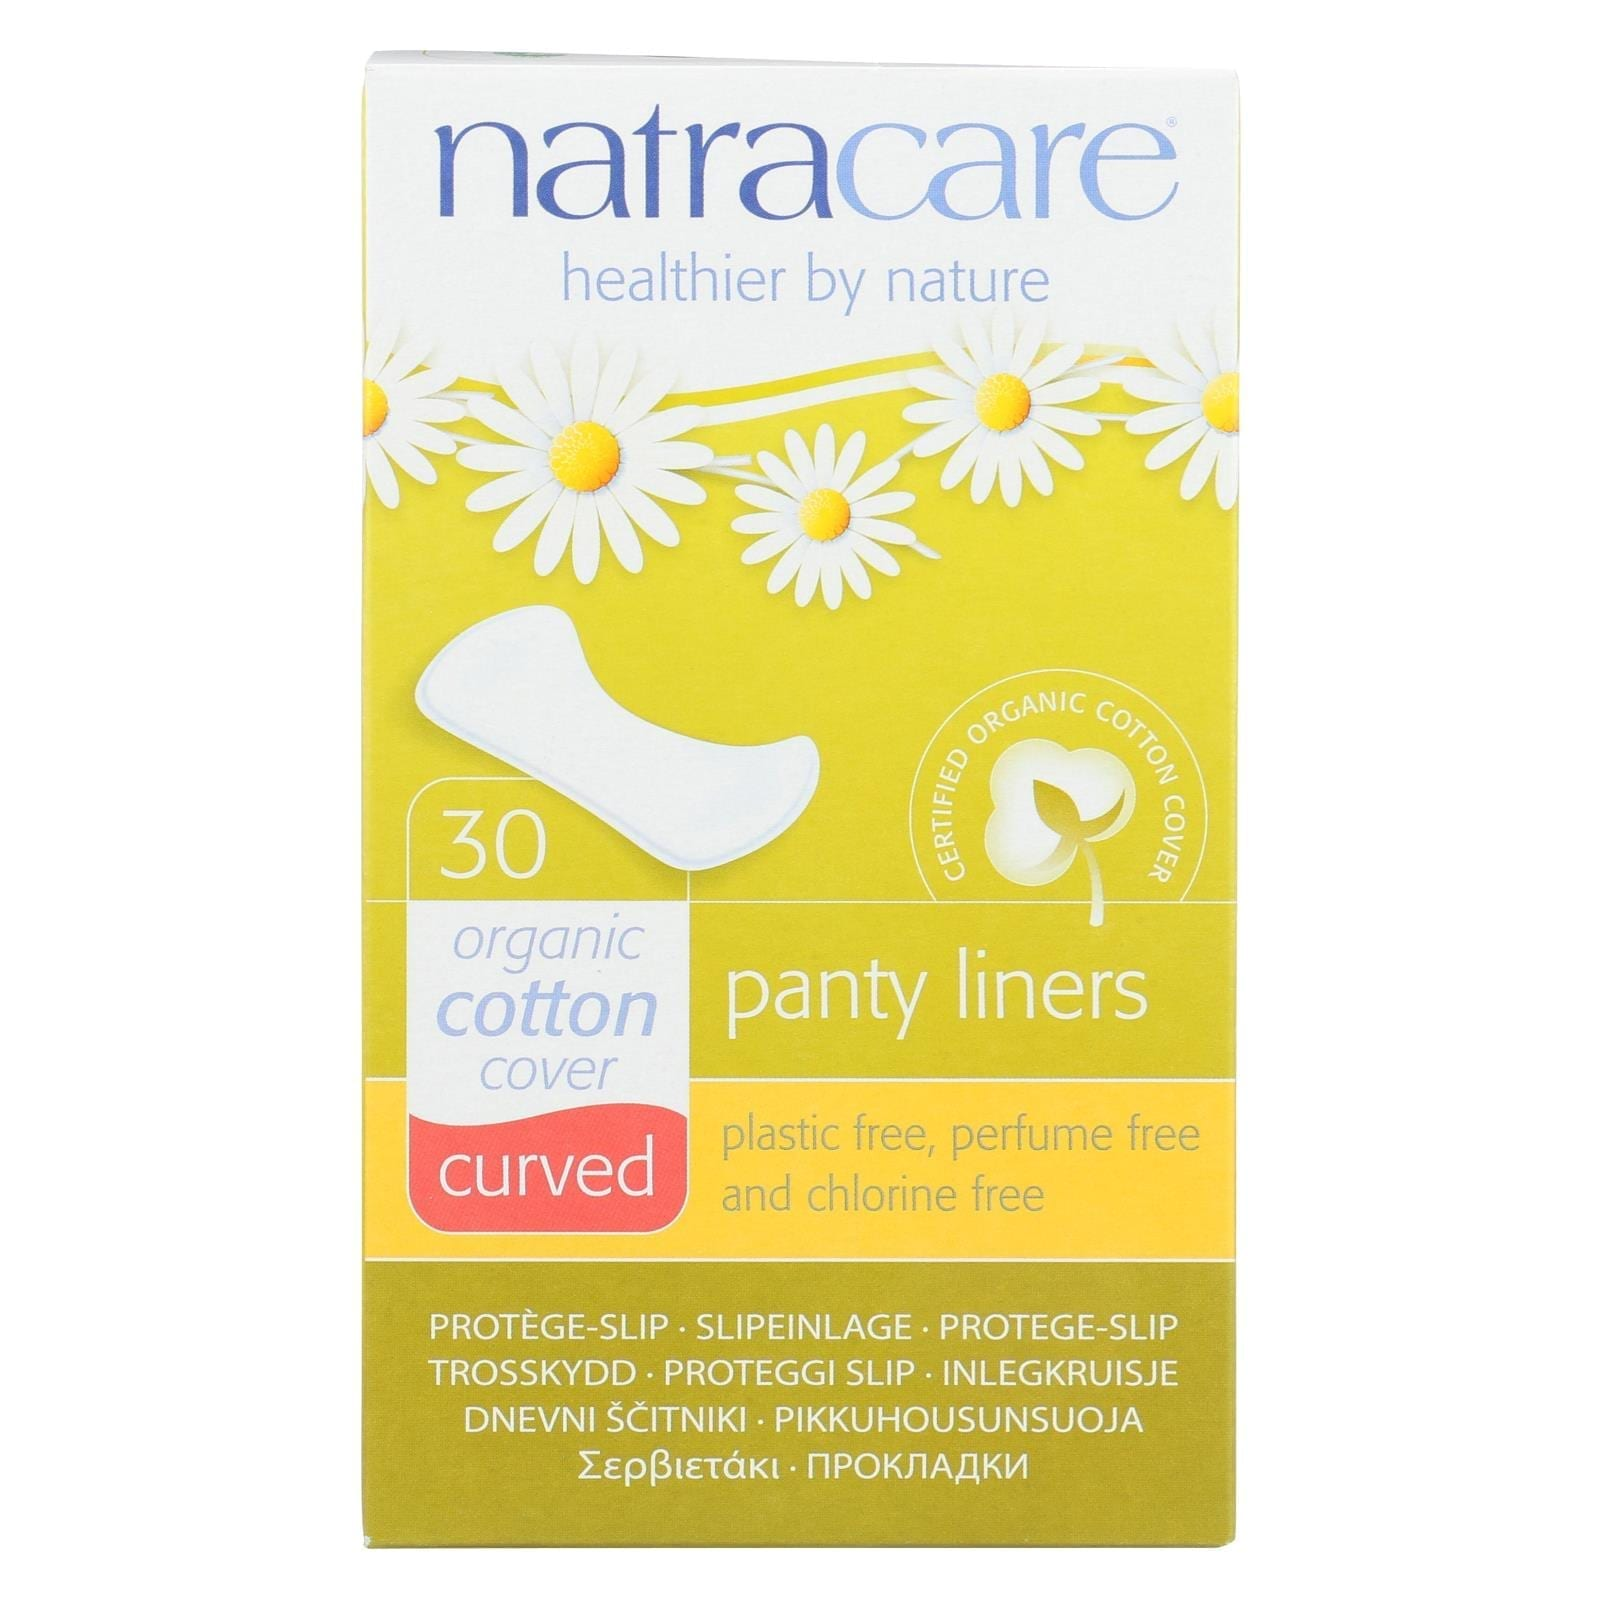 Natracare Natural Curved Panty Liners